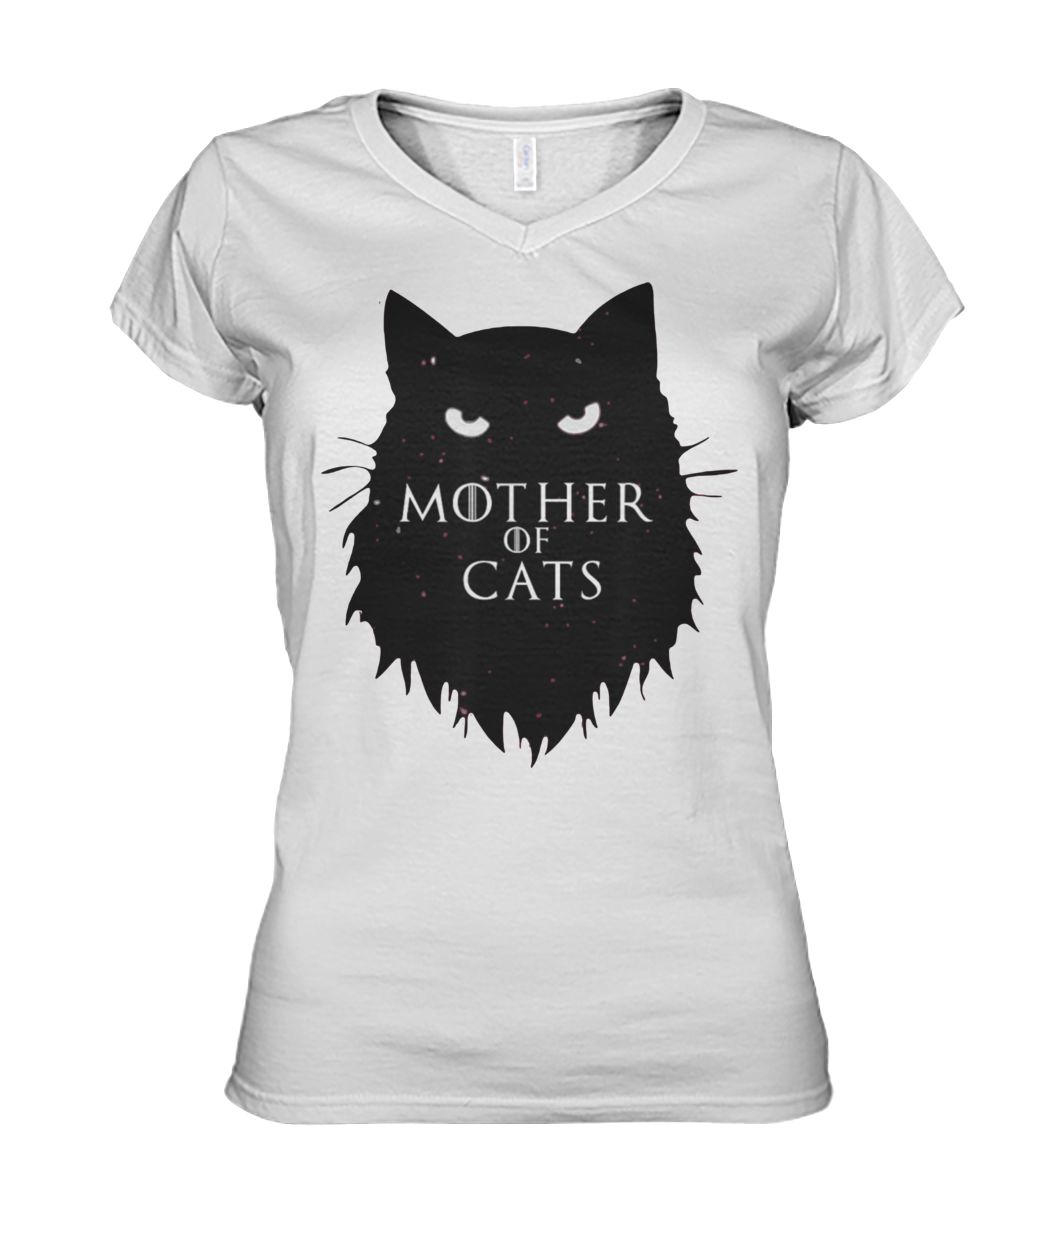 Mother of cats game of thrones women's v-neck